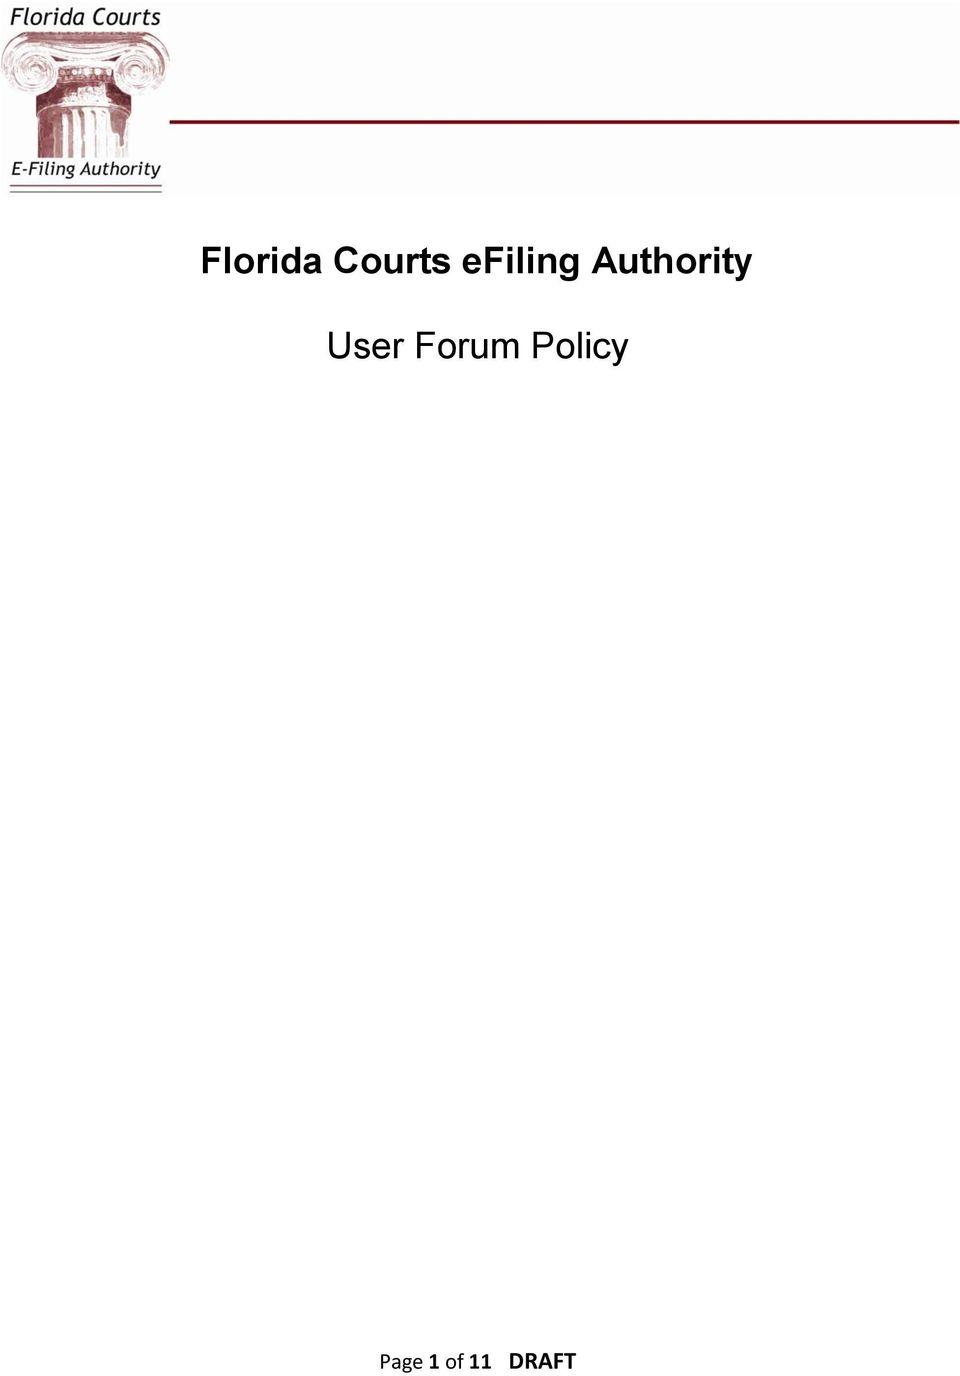 User Forum Policy